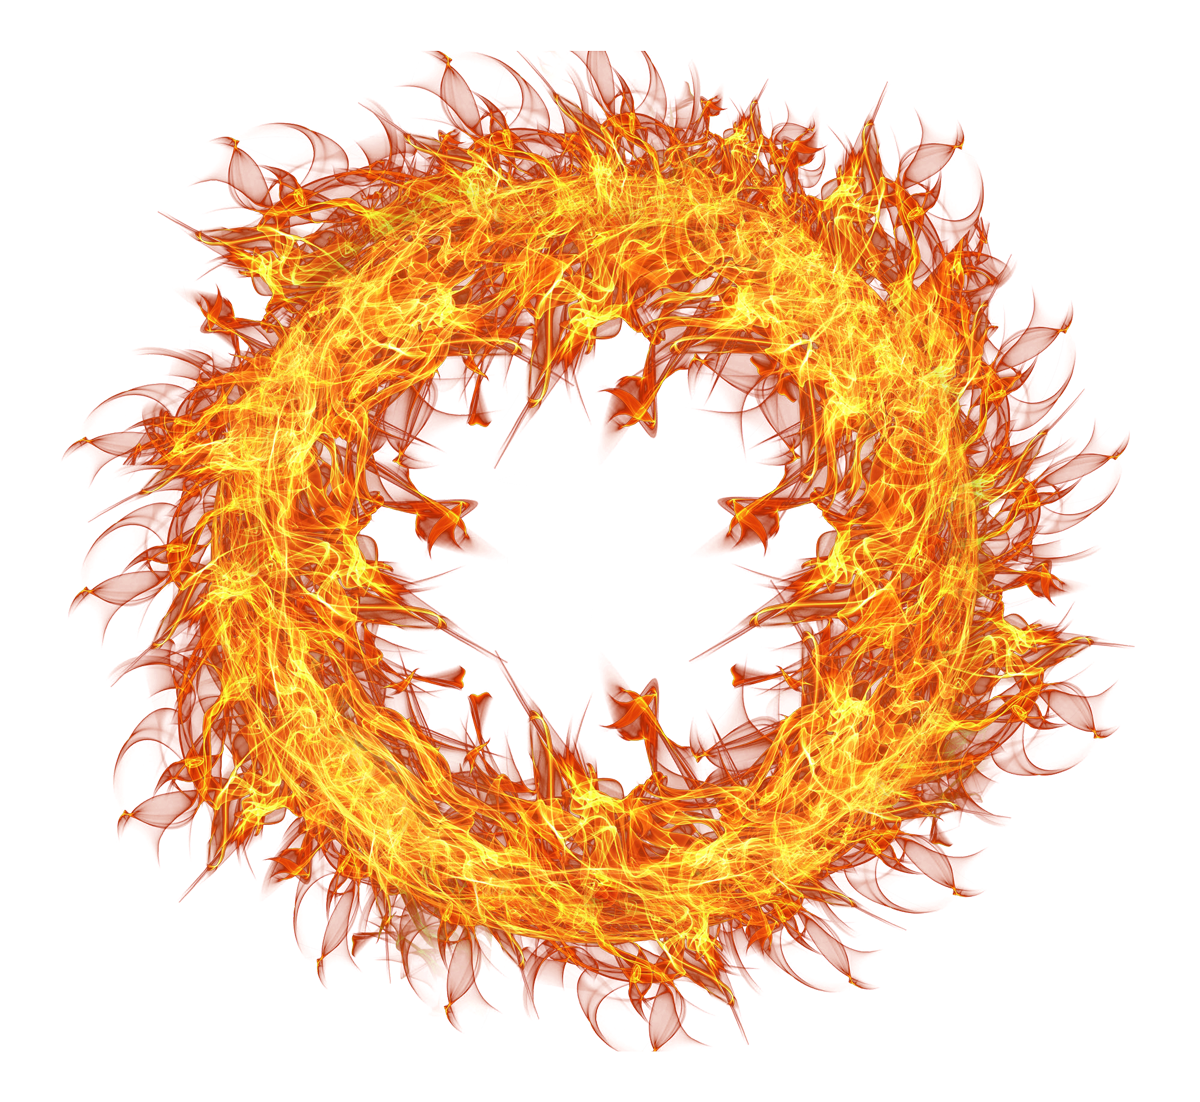 Fire ring png. Flame circle transparent image